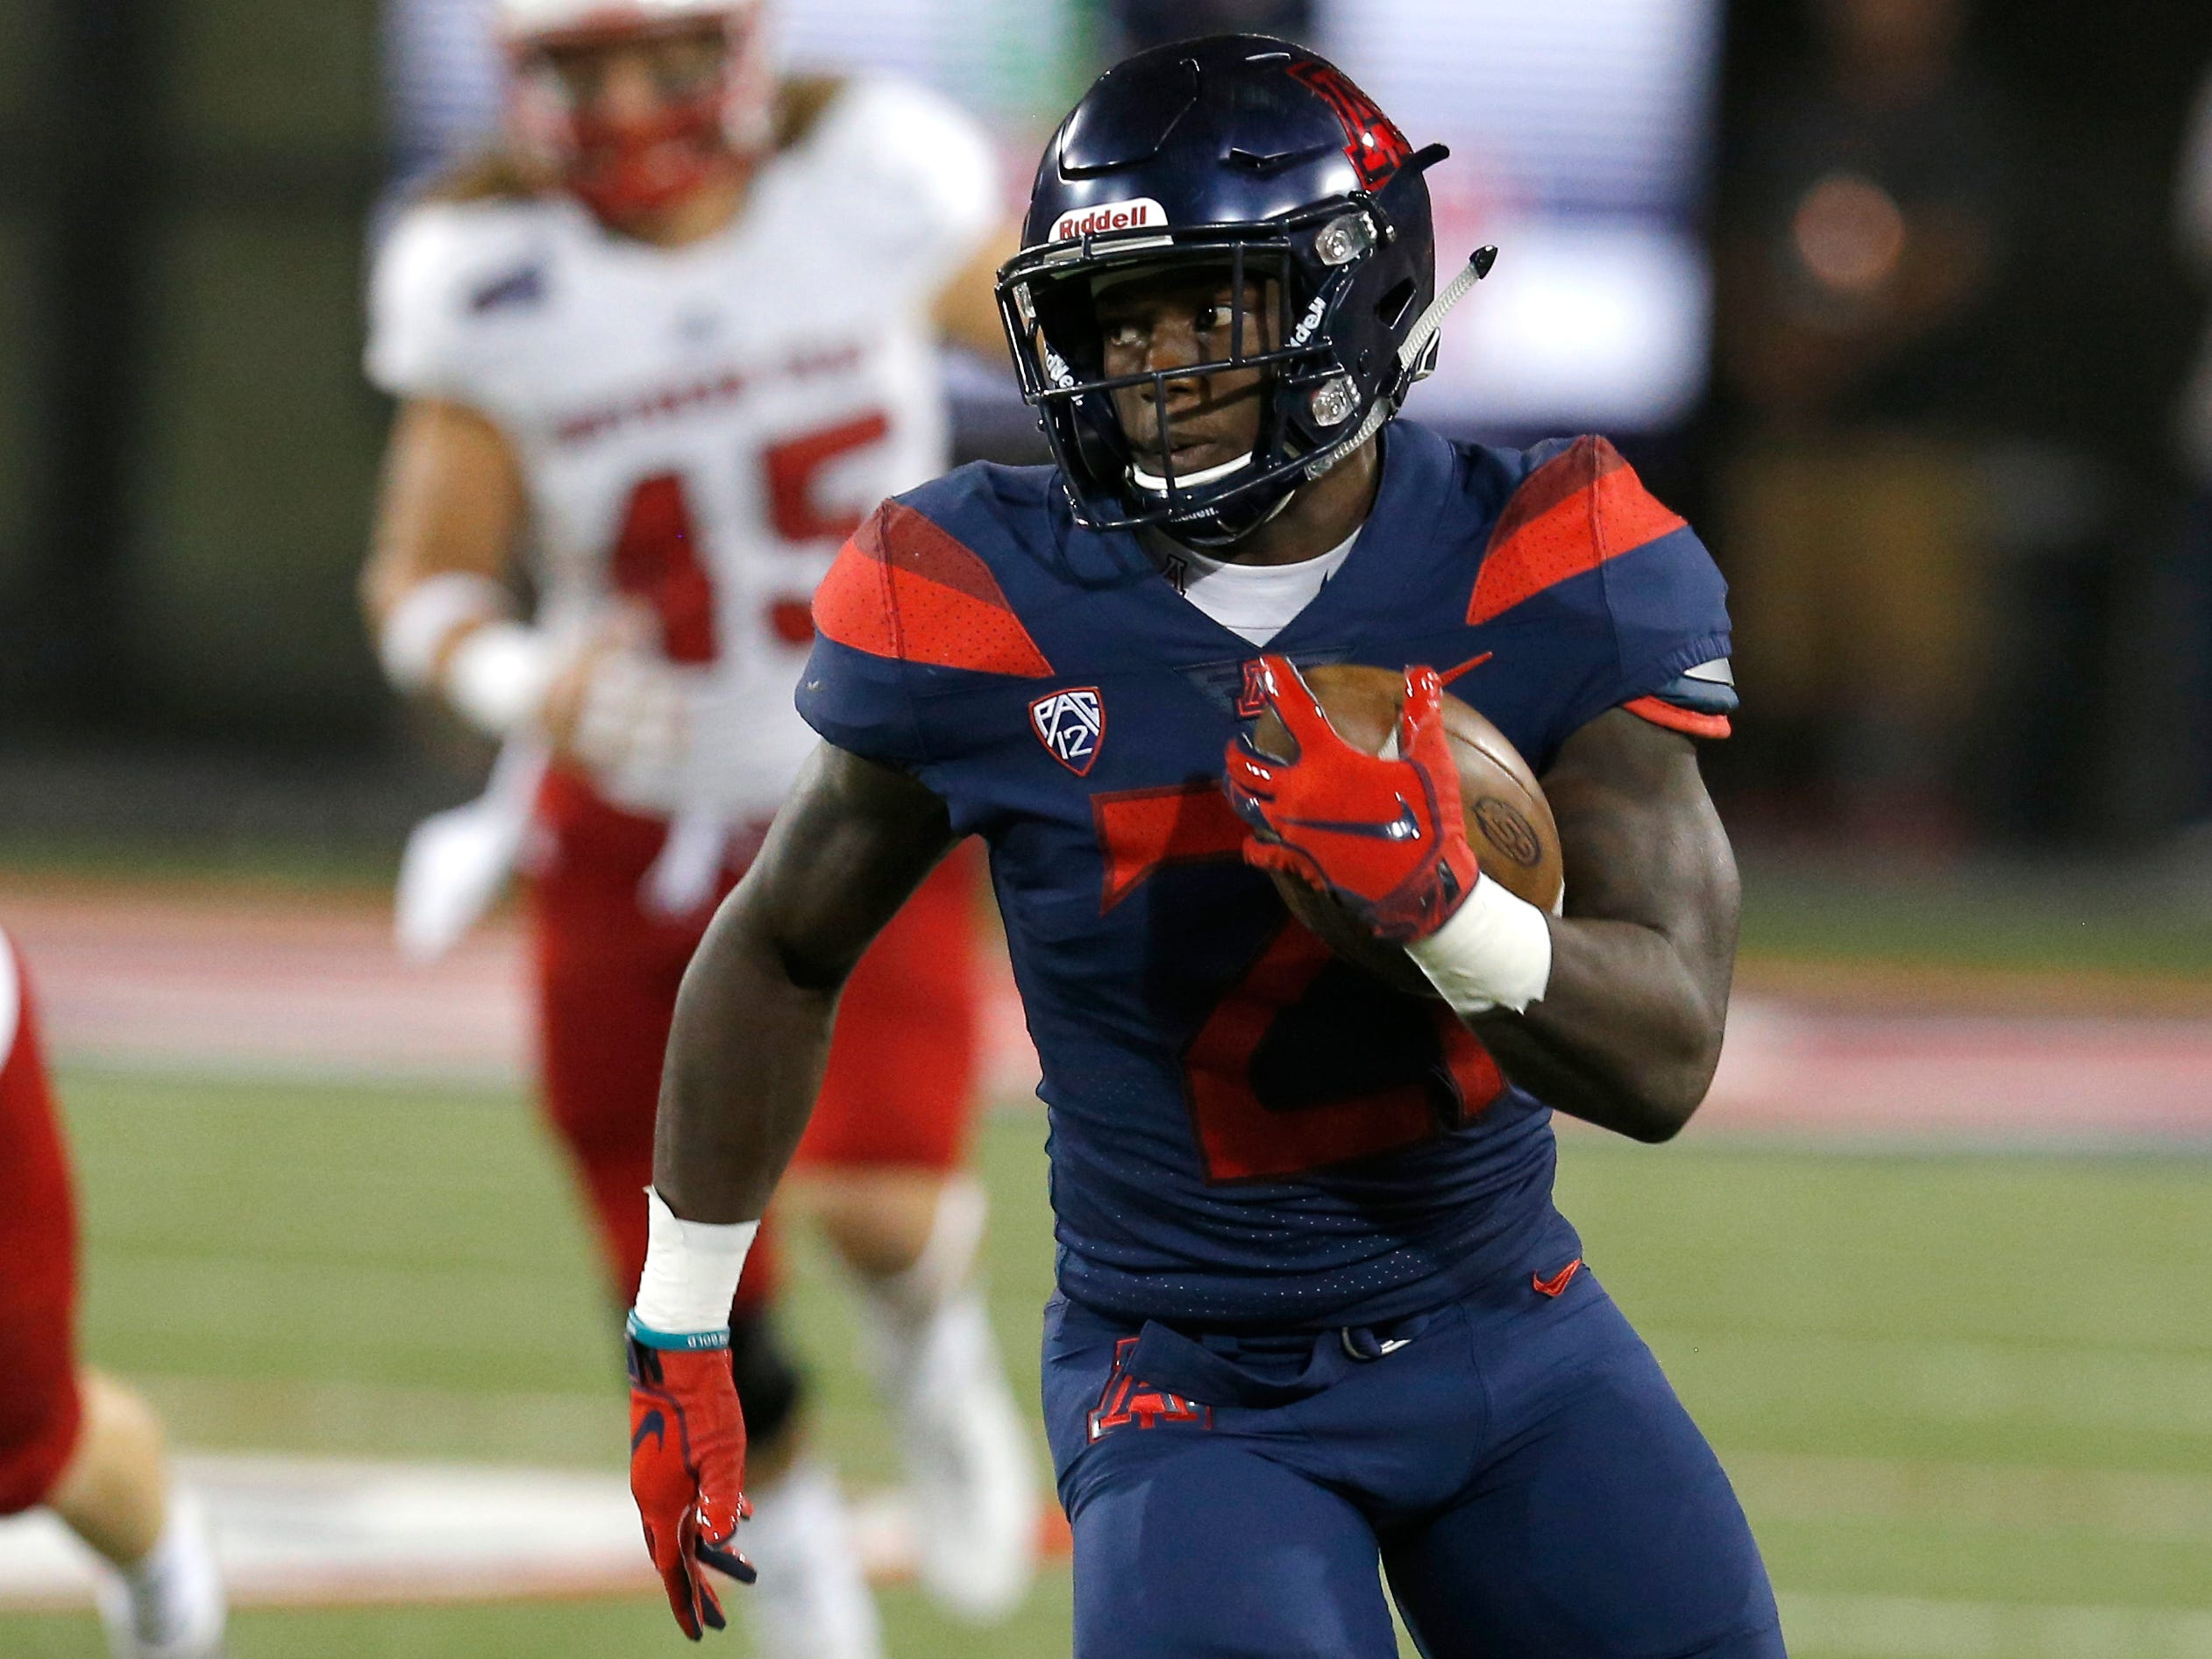 Arizona running back J.J. Taylor (21) in the first half during an NCAA college football game against Southern Utah, Saturday, Sept. 15, 2018, in Tucson, Ariz. (AP Photo/Rick Scuteri)